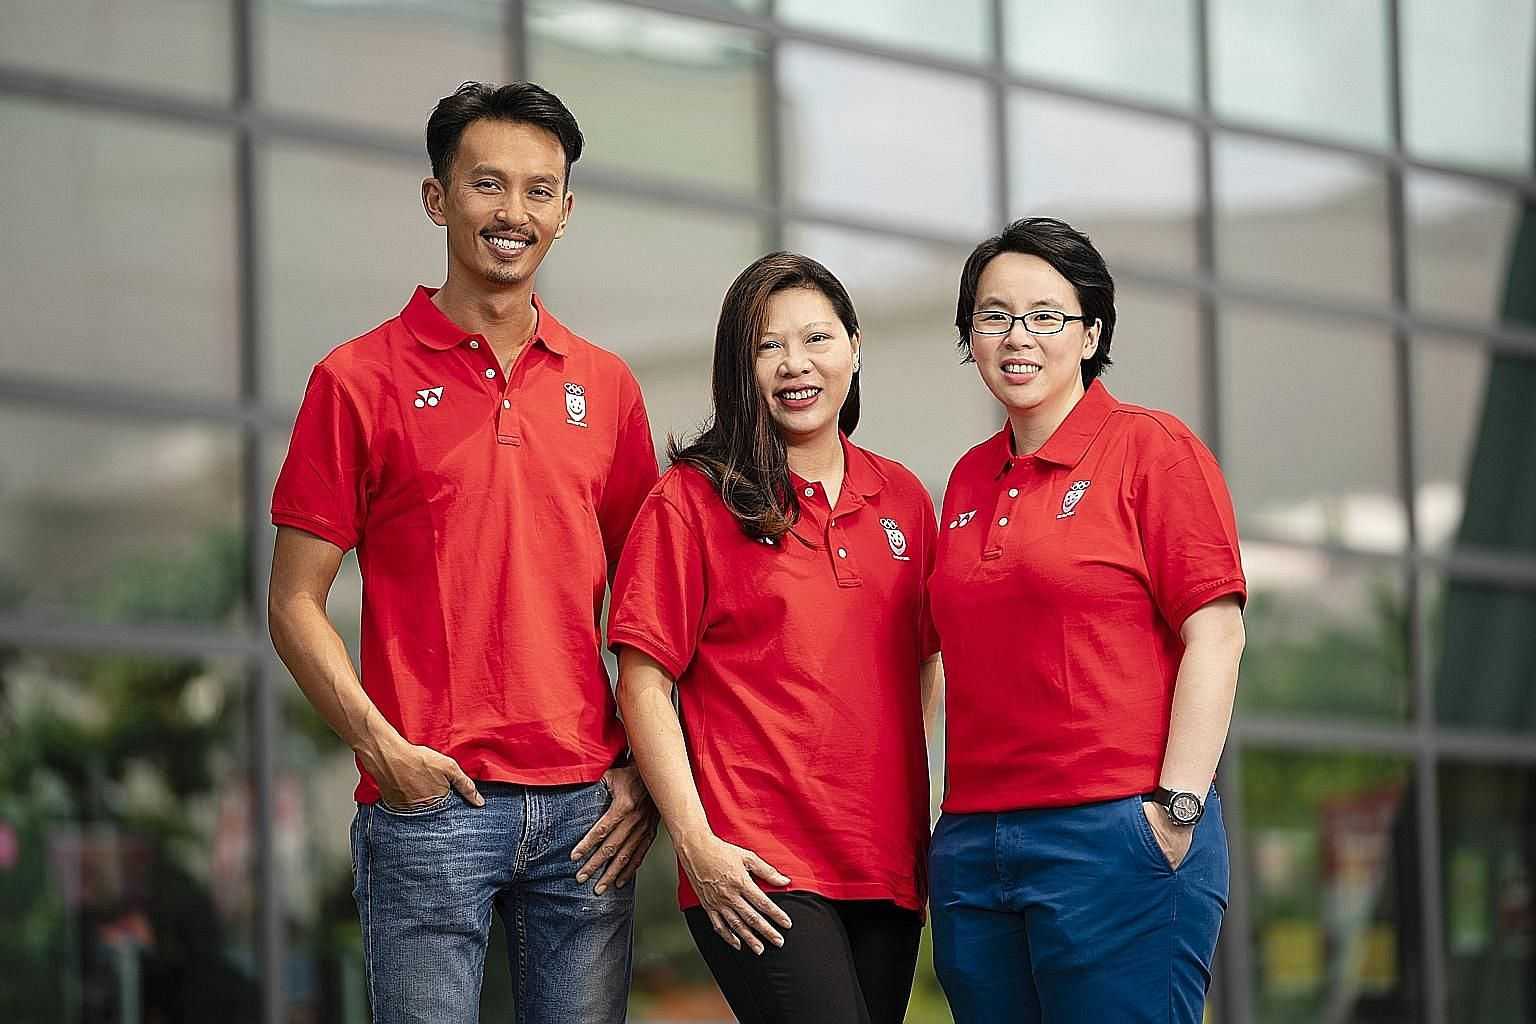 Juliana Seow (centre) will be the Singapore contingent's chef de mission for the Philippines SEA Games. Chung Pei Ming and Valerie Teo will assist her.